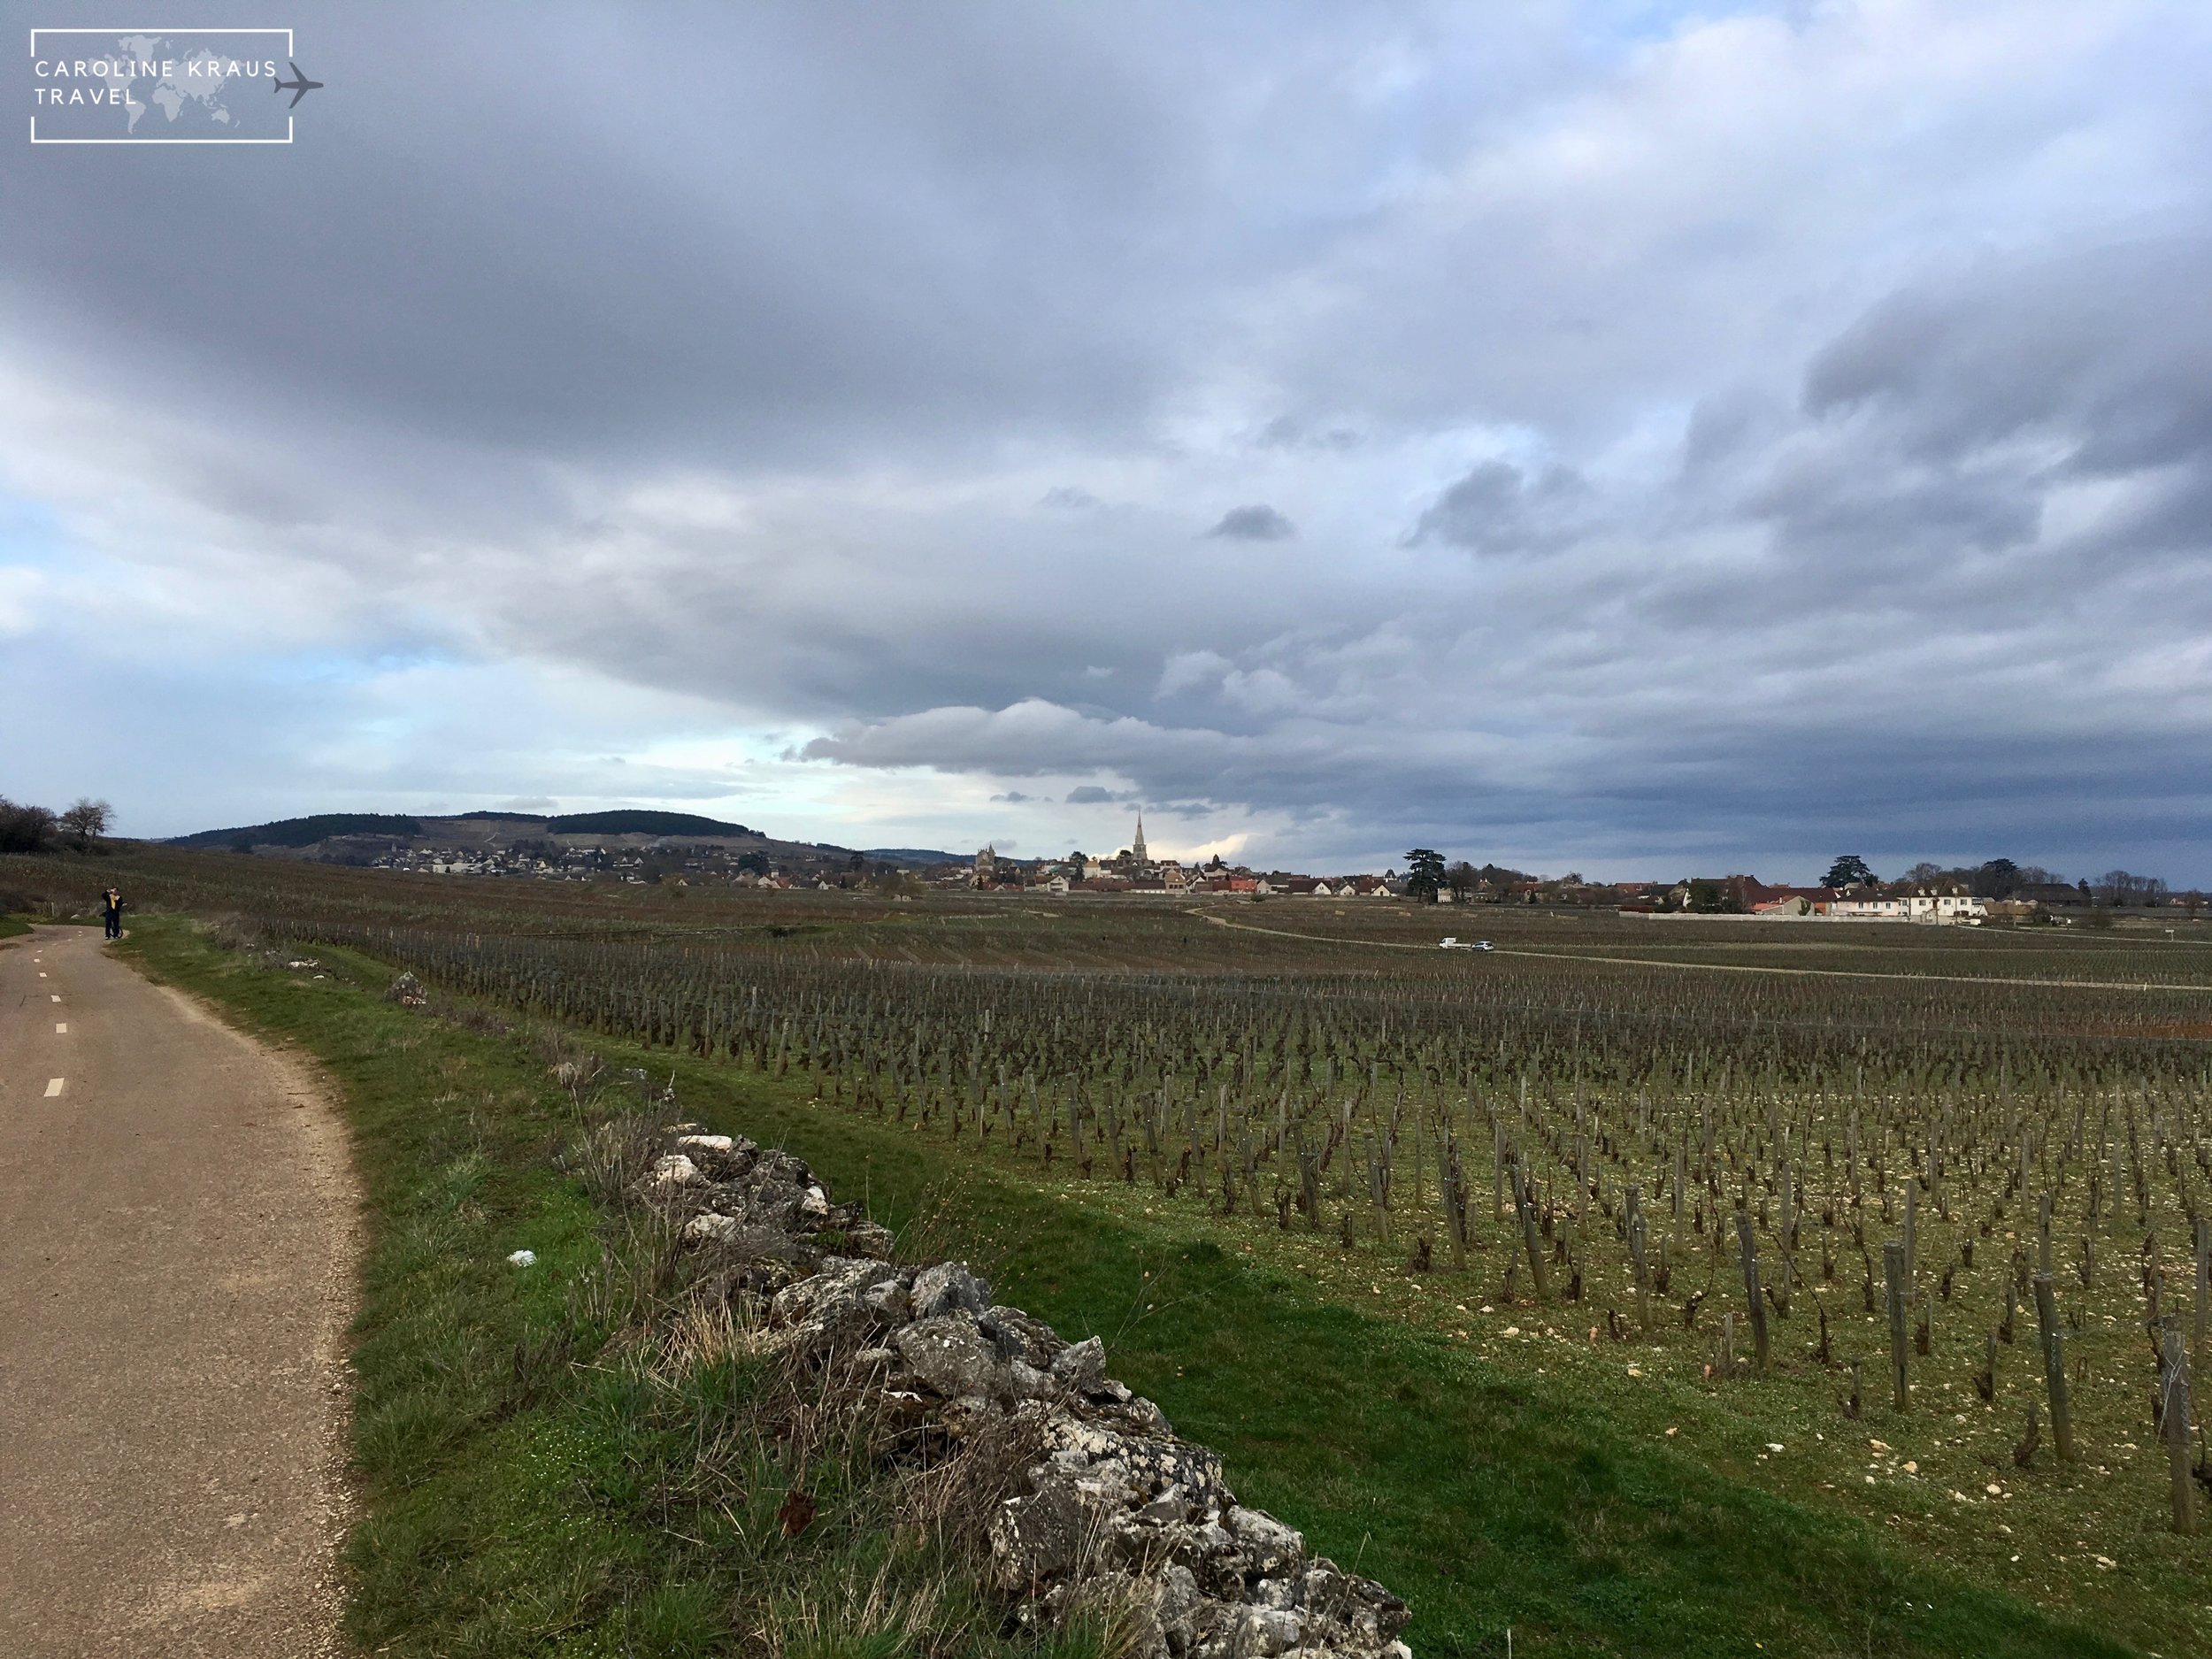 Meursault from a distance on our bike ride